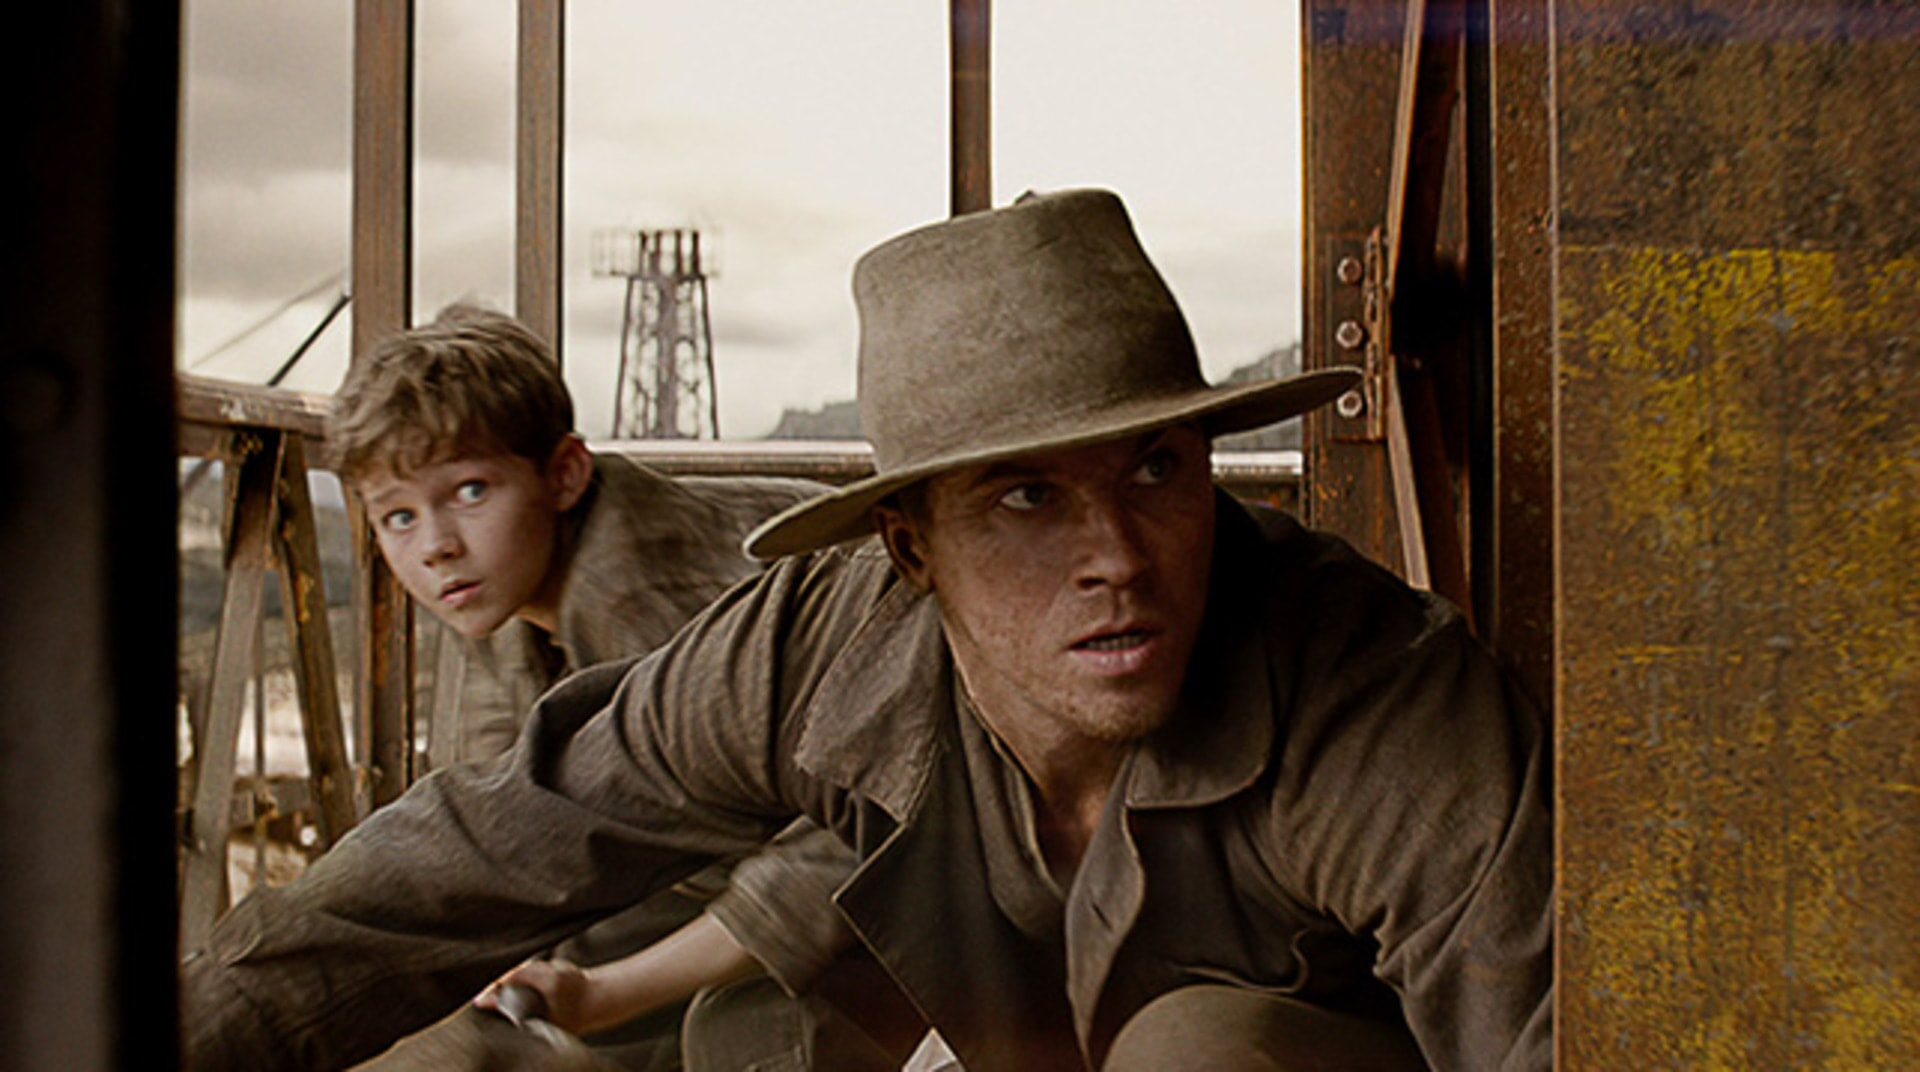 """LEVI MILLER as Peter and GARRETT HEDLUND as Hook in Warner Bros. Pictures' and RatPac-Dune Entertainment's action adventure """"PAN,"""" a Warner Bros. Pictures release."""